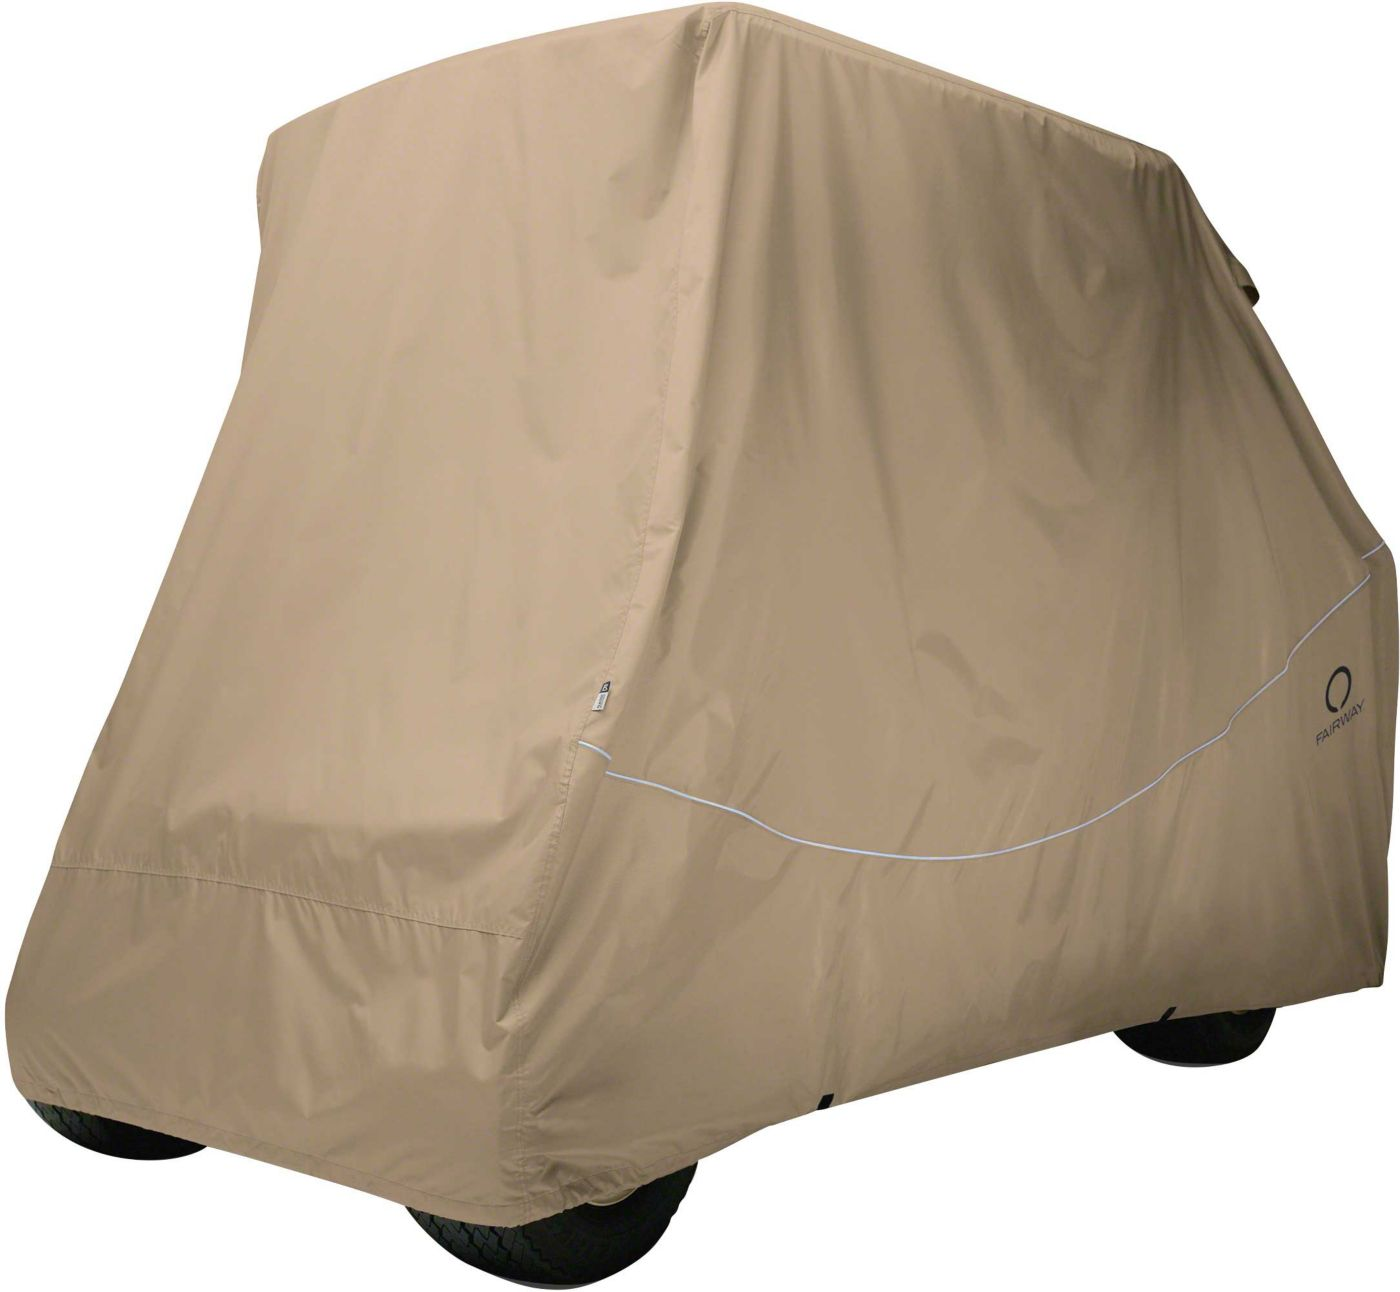 Classic Accessories Fairway Conversion Quick-Fit Golf Cart Cover